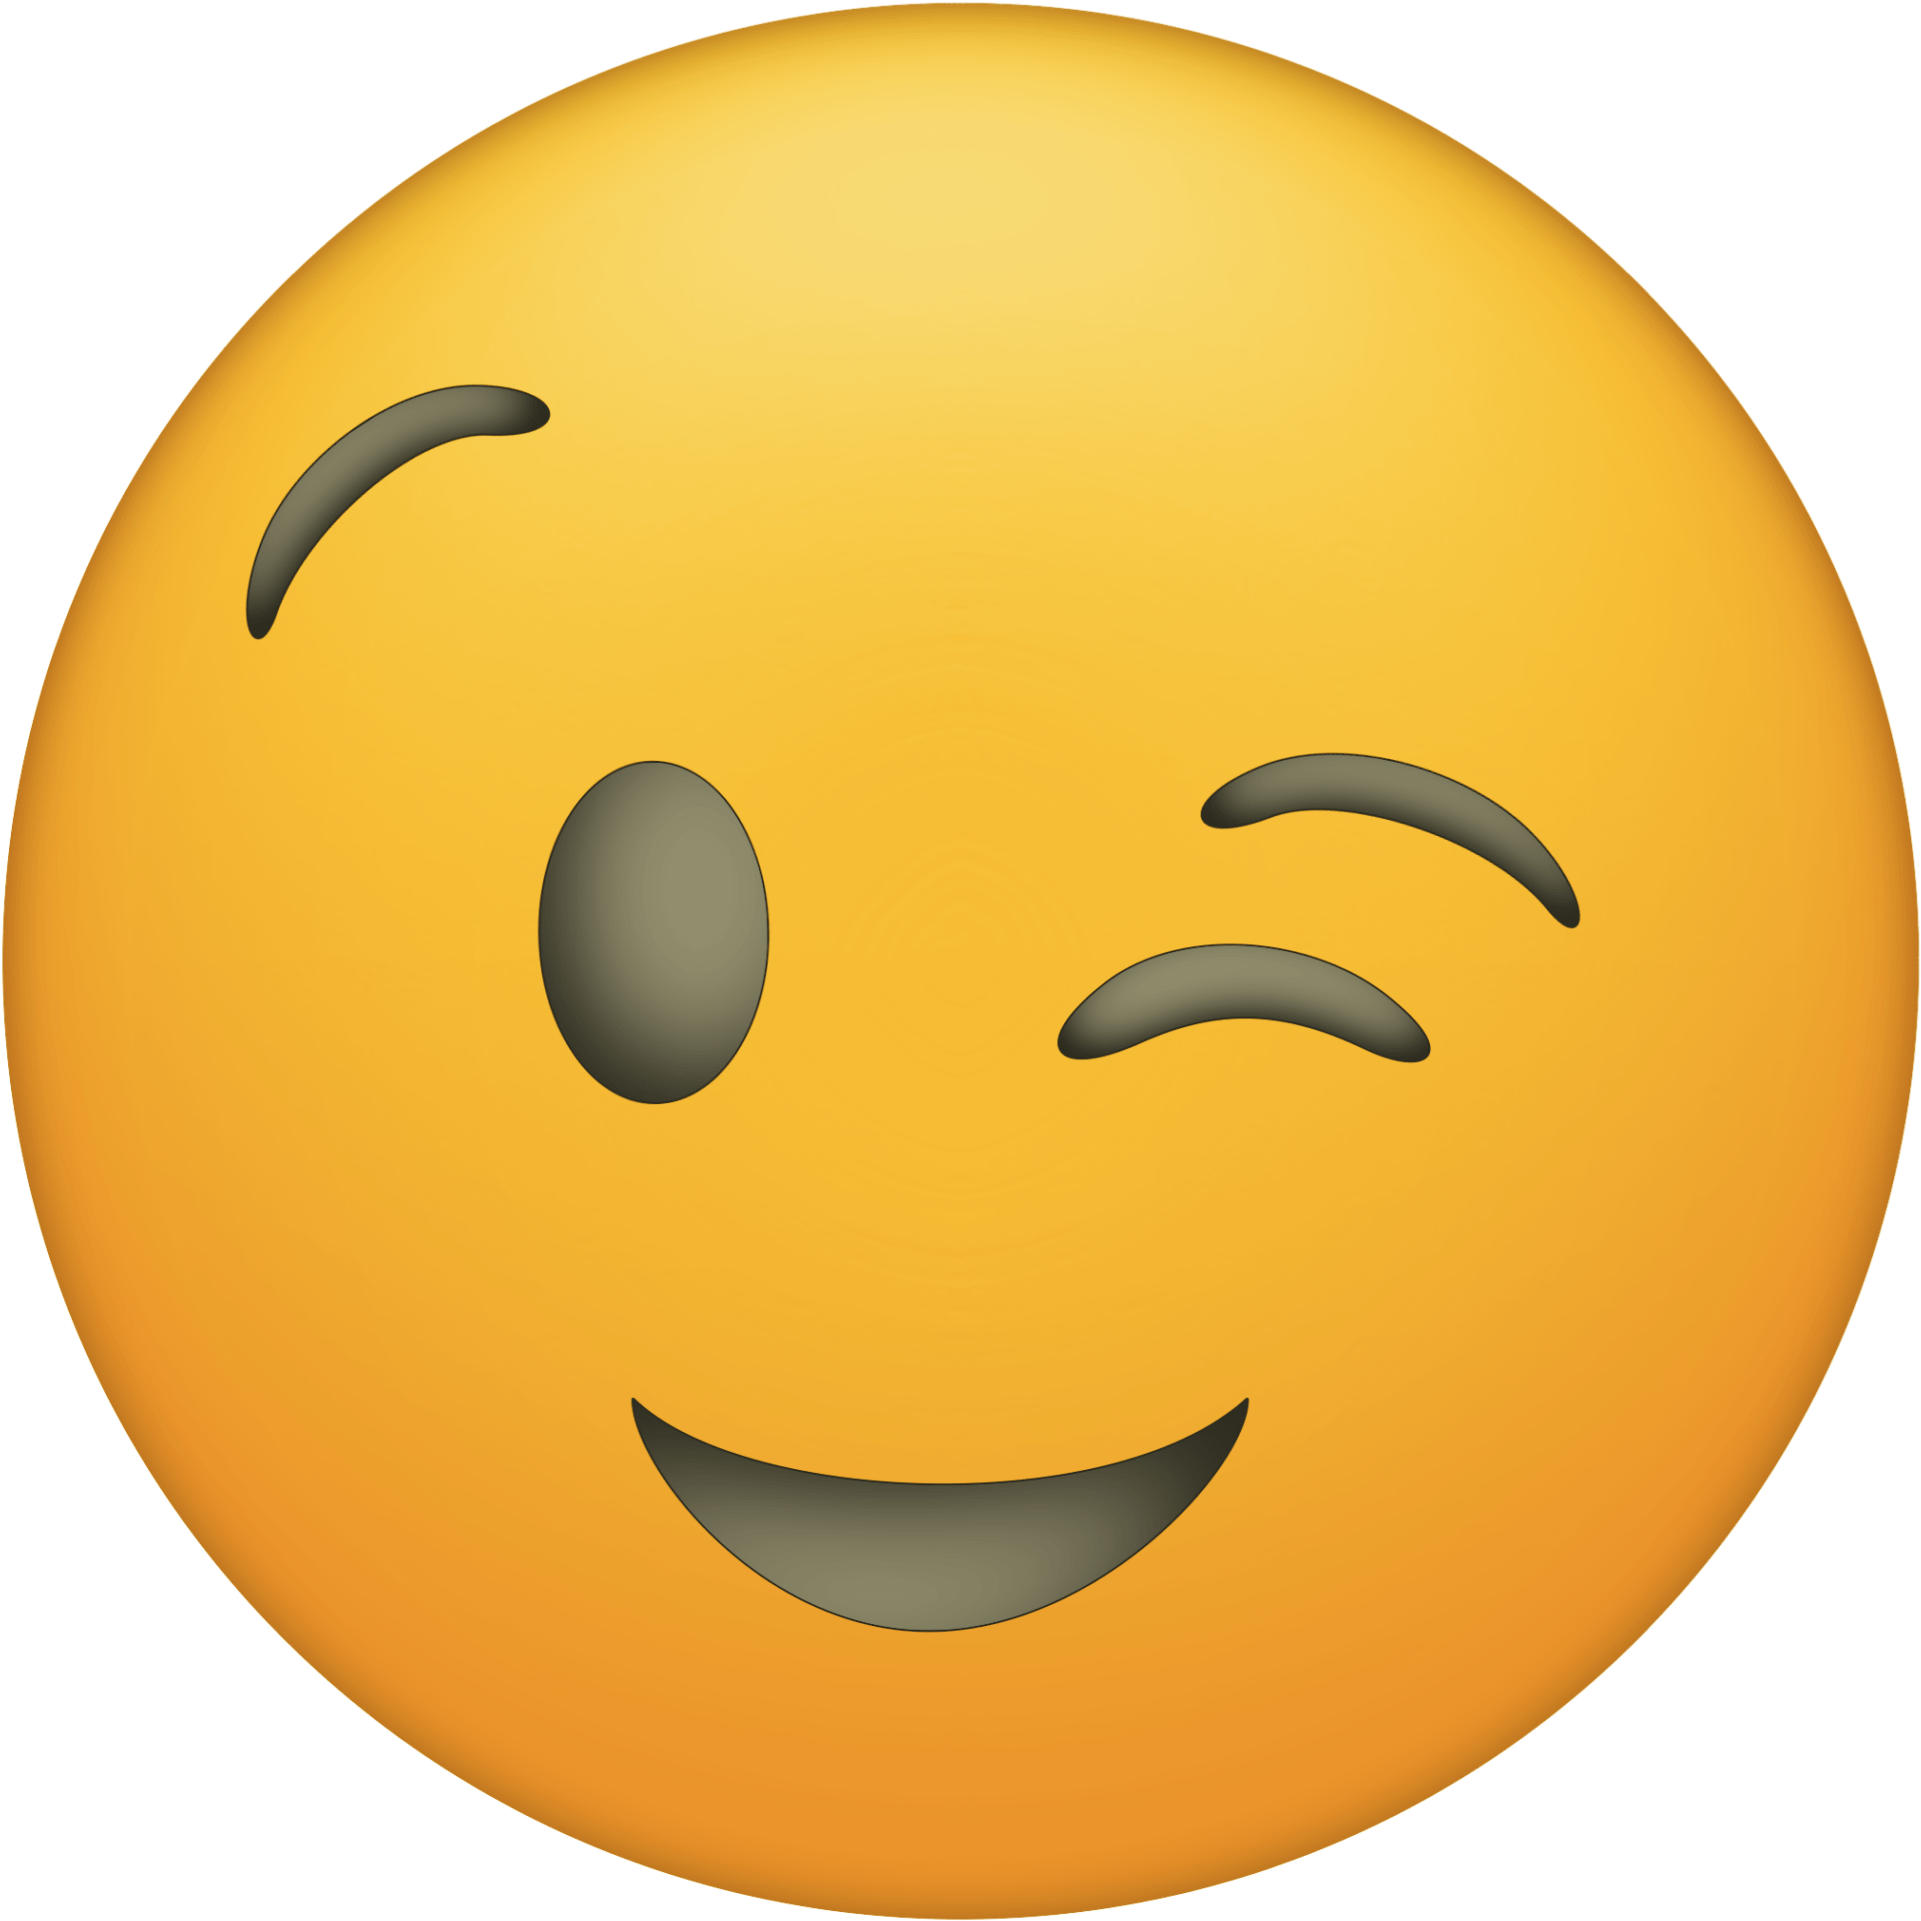 Transparent huge smile clipart - Click The Following Links To Print The Emoji Faces - Winky Face Emoji Png